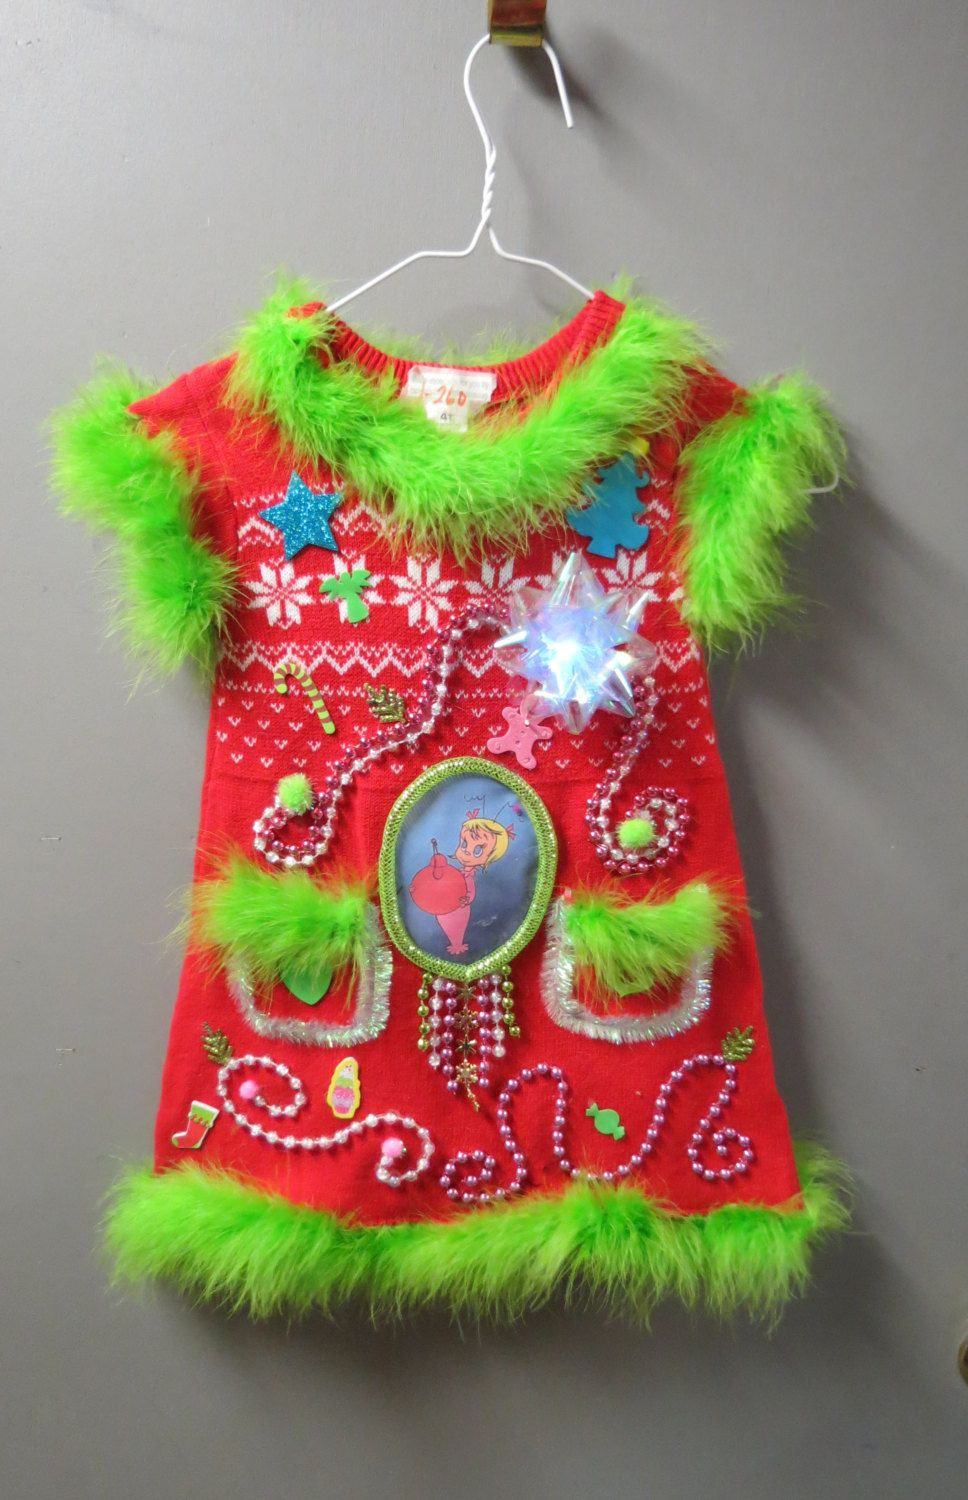 a4e9ecd1a8e Girls Red Tacky Ugly Christmas Sweater Grinch Mini Dress garland beads  Light up bow size 4T Red with Lime Feather FooFoo Trim Darling! by  tackyuglychristmas ...